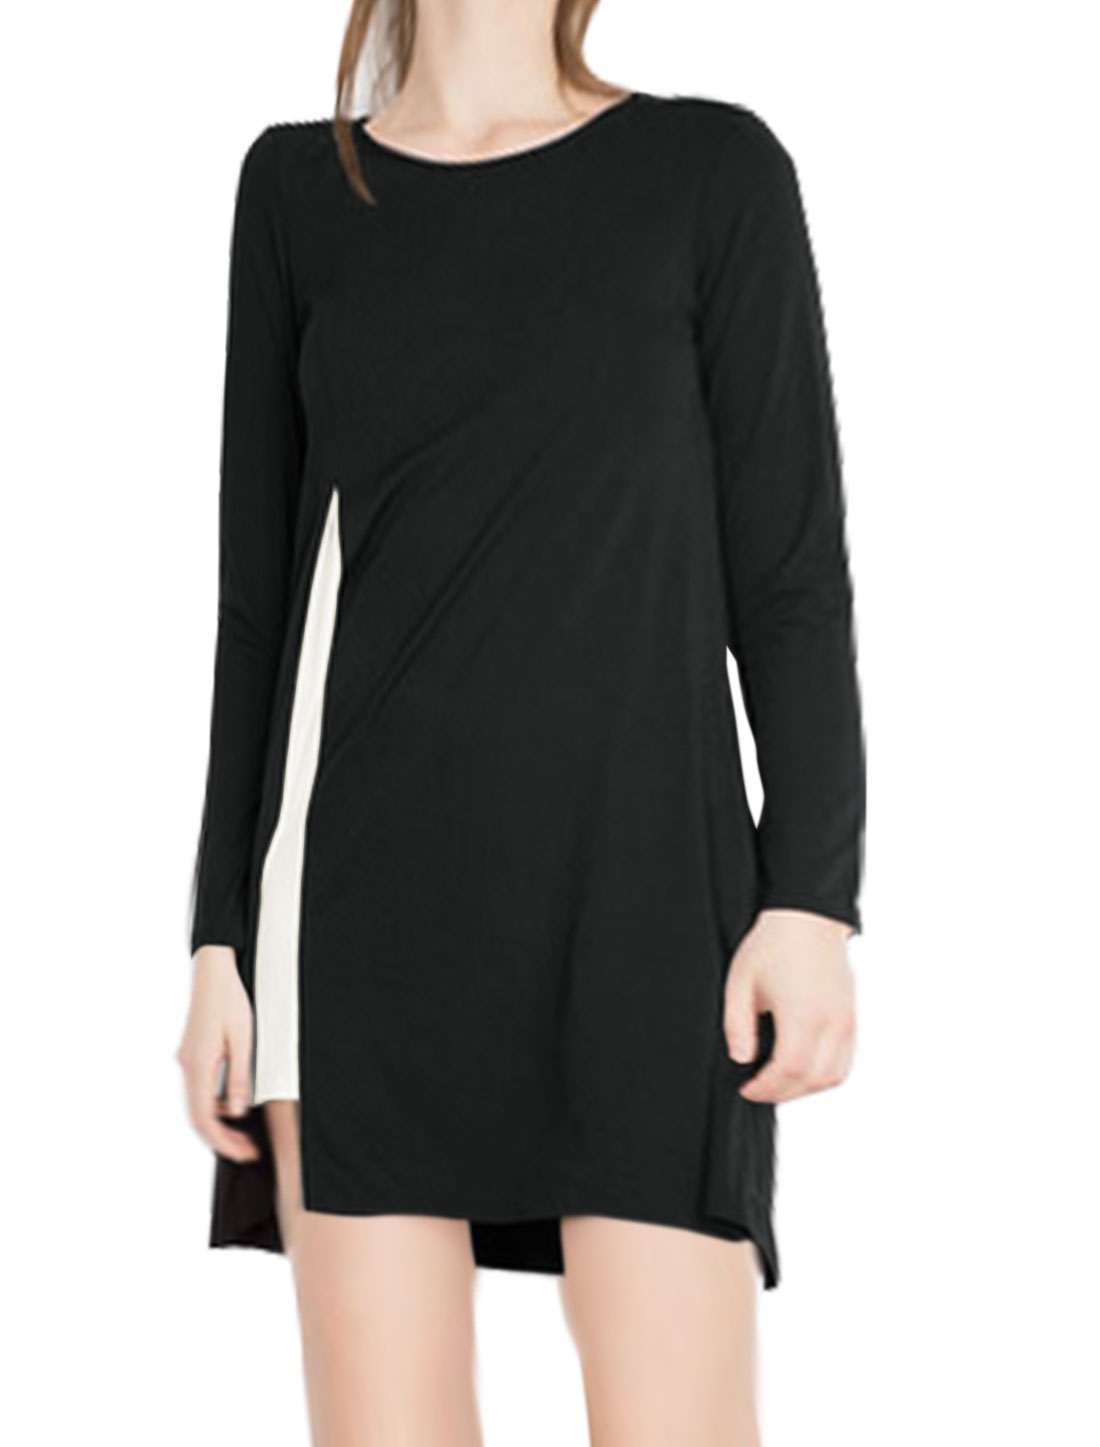 Ladies Long Sleeves Contrast Color Straight Dress Black M